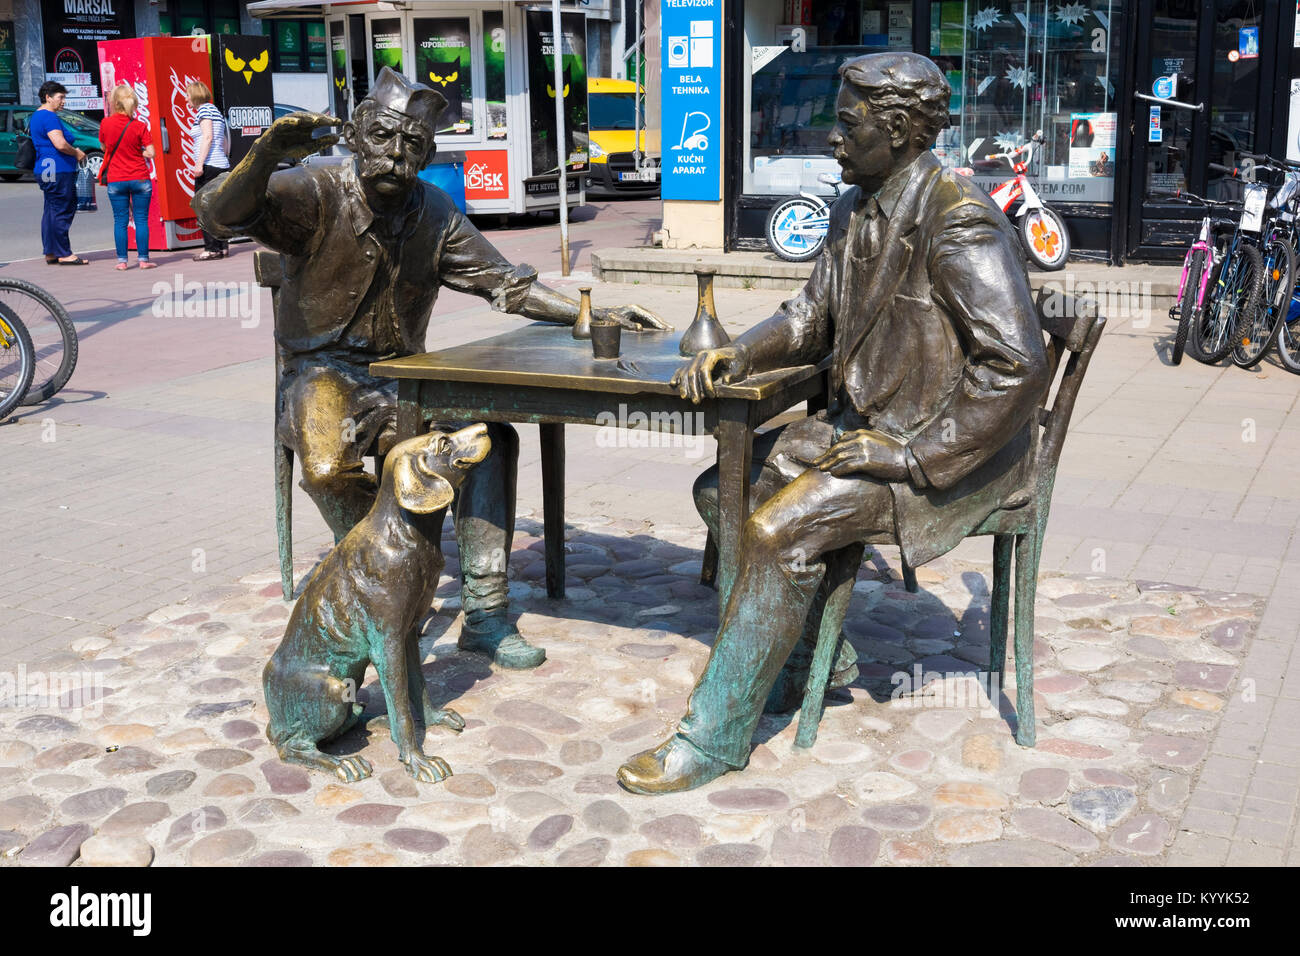 Sculpture in Nis city centre, Serbia, in honour of Stevan Sremac, a Serbian realist and comedy writer. - Stock Image